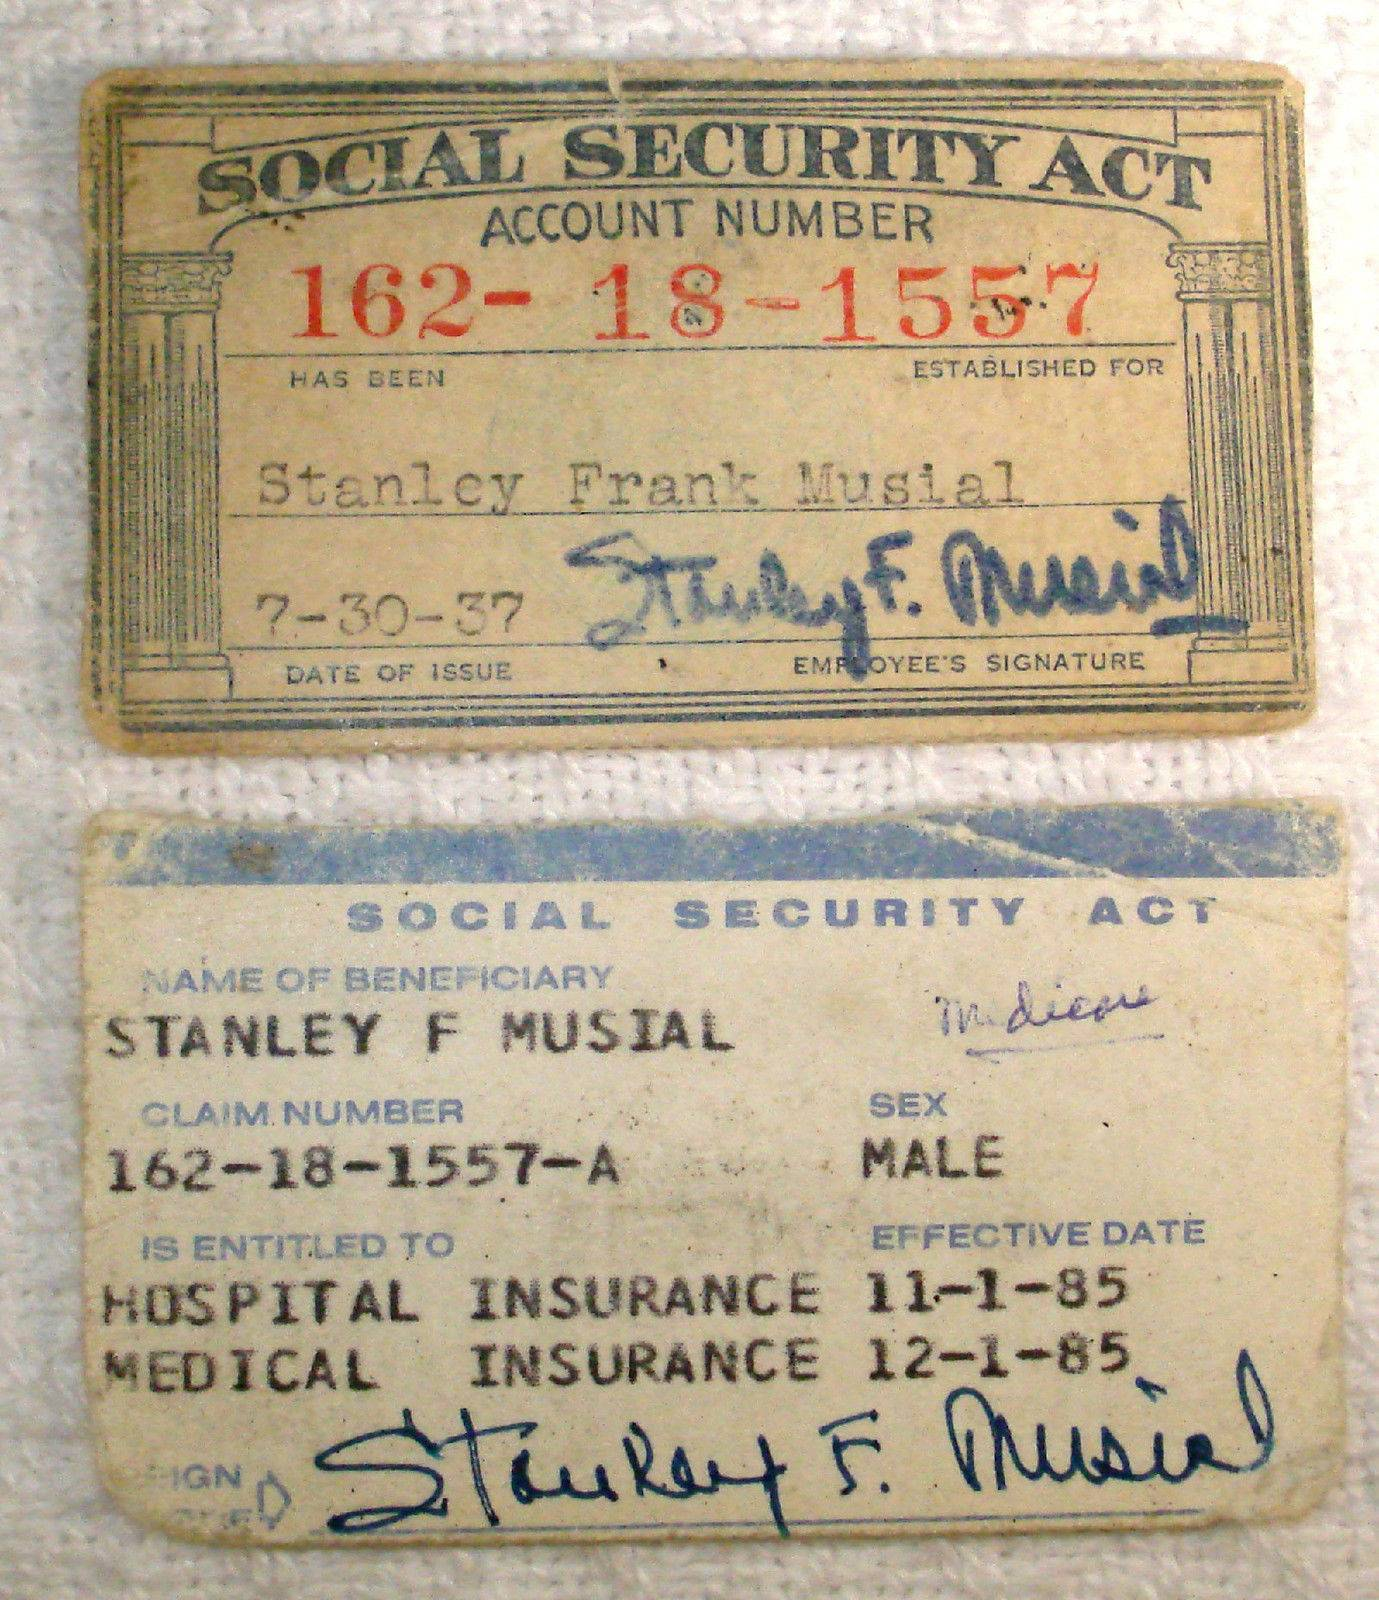 STAN MUSIAL's OWN 1937 Social Security & 1985 Medicare Cards FROM MUSIAL ESTATE